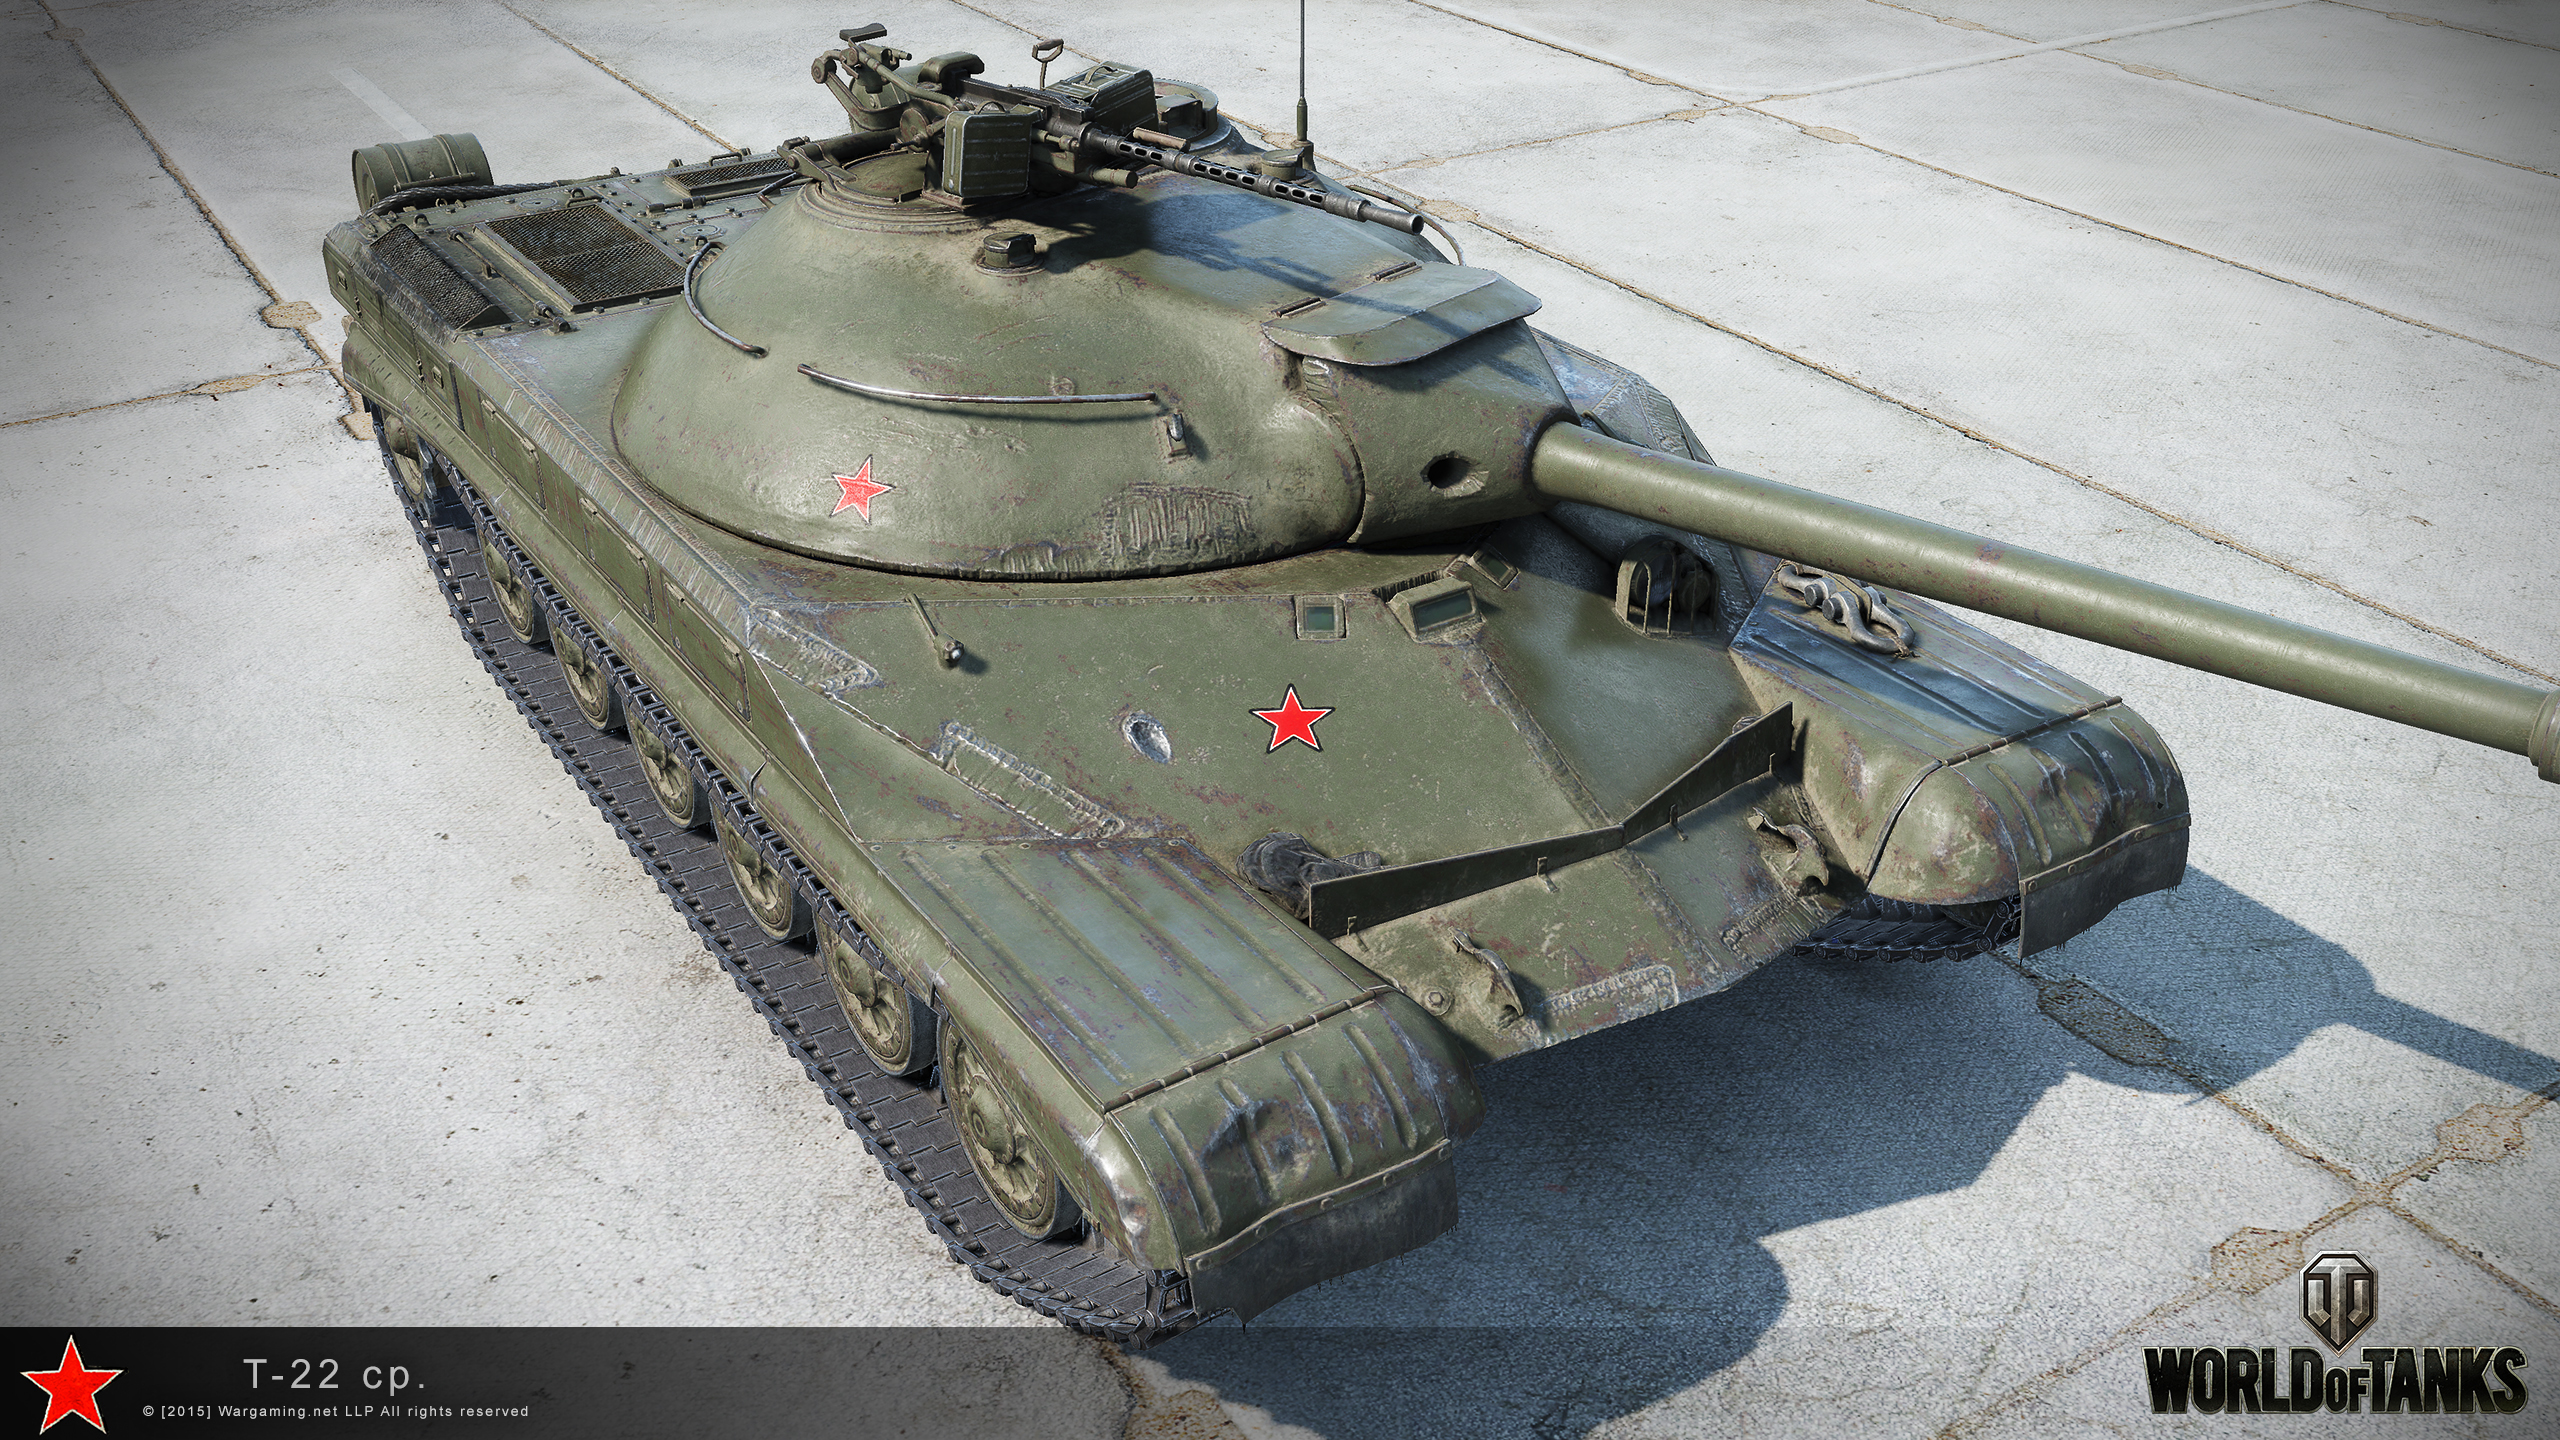 World-of-Tanks-T-22-Medium